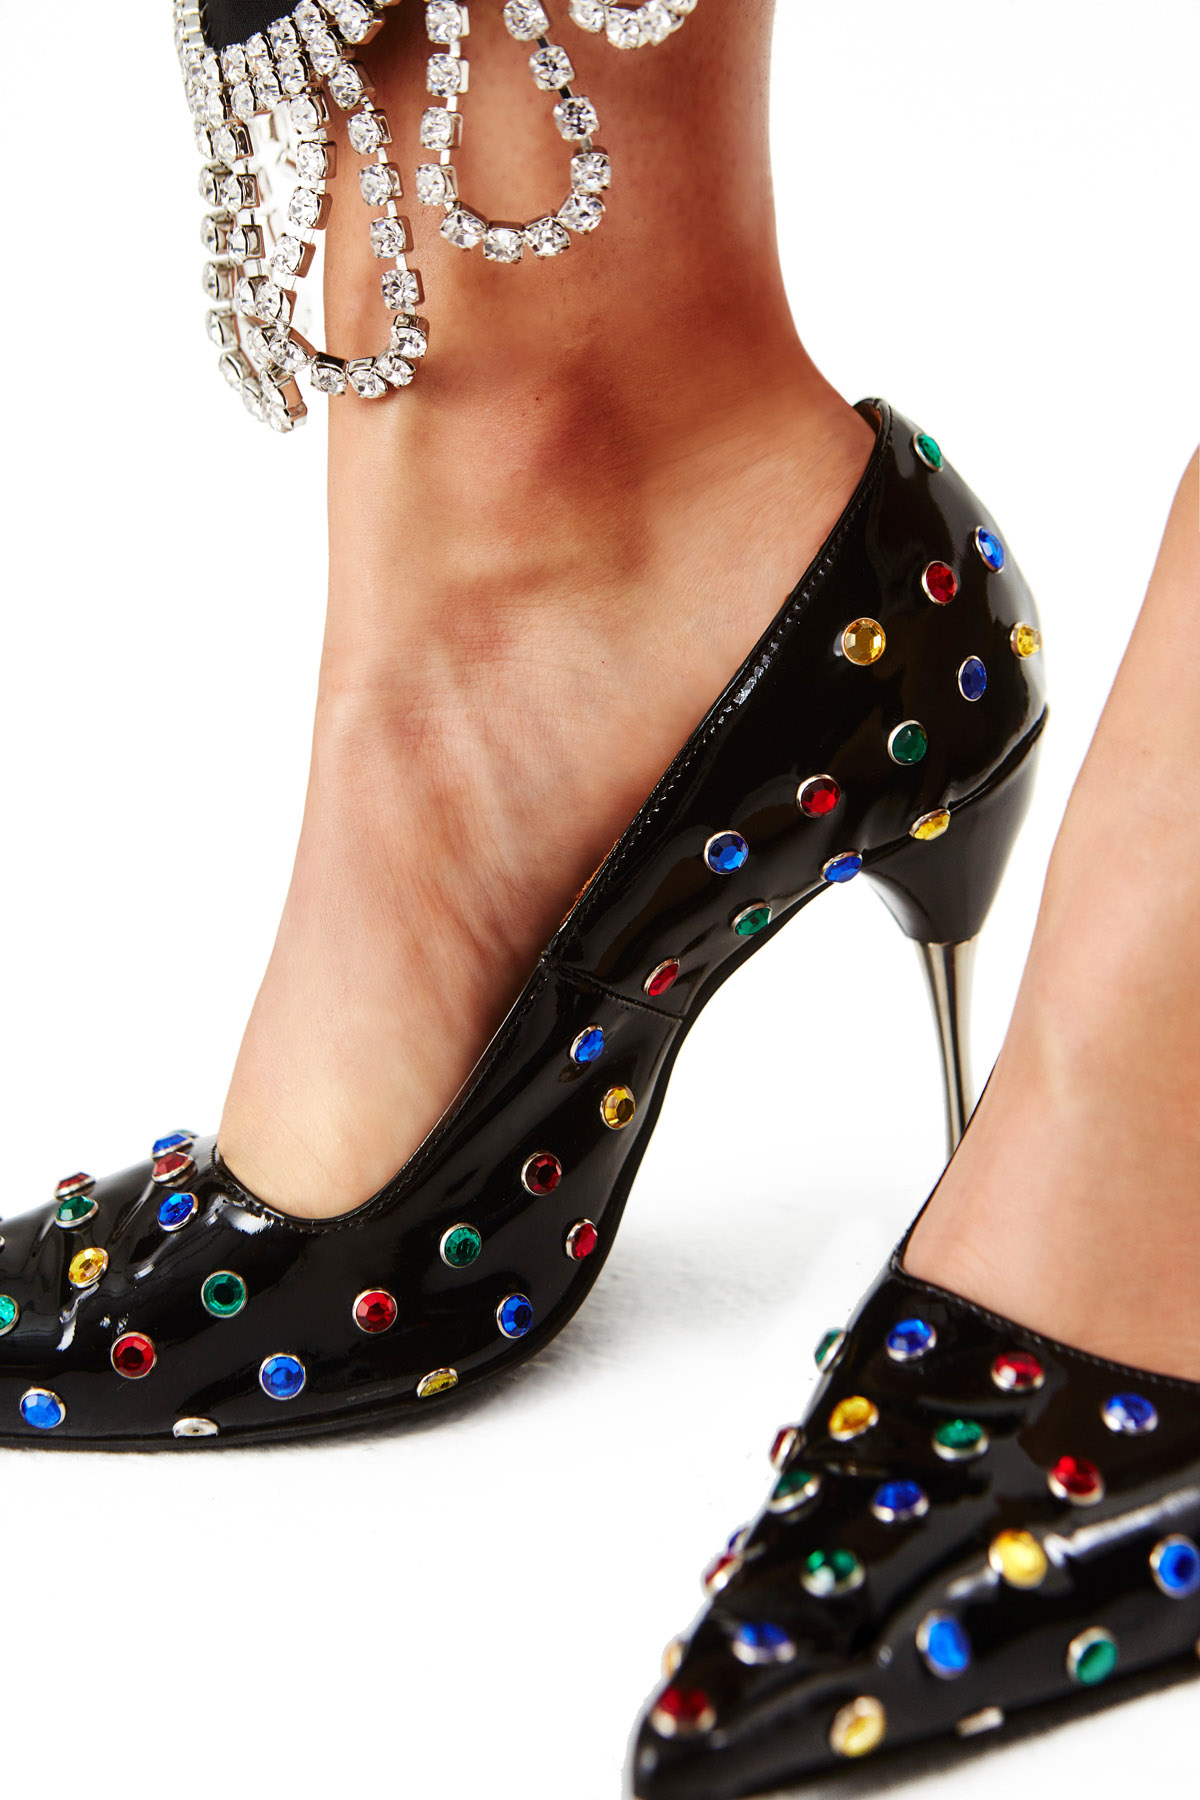 Black patent leather pump embossed with multi-color crystal studs. 90MM heel. Silver heel hardware.